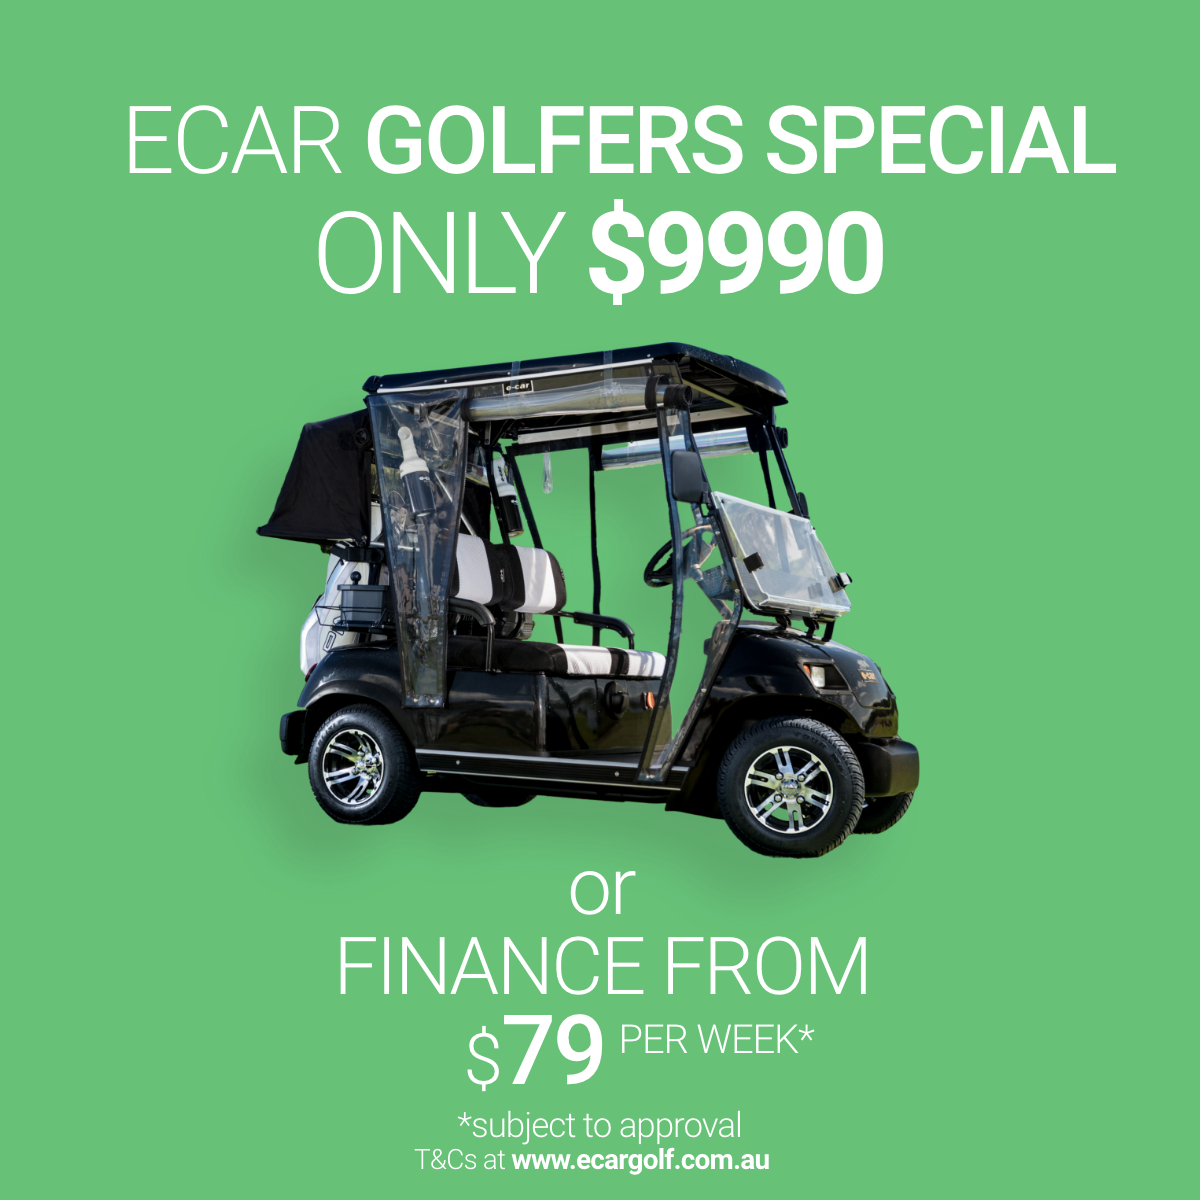 ECAR Golfers Package Special ELECTRIC CART SALE